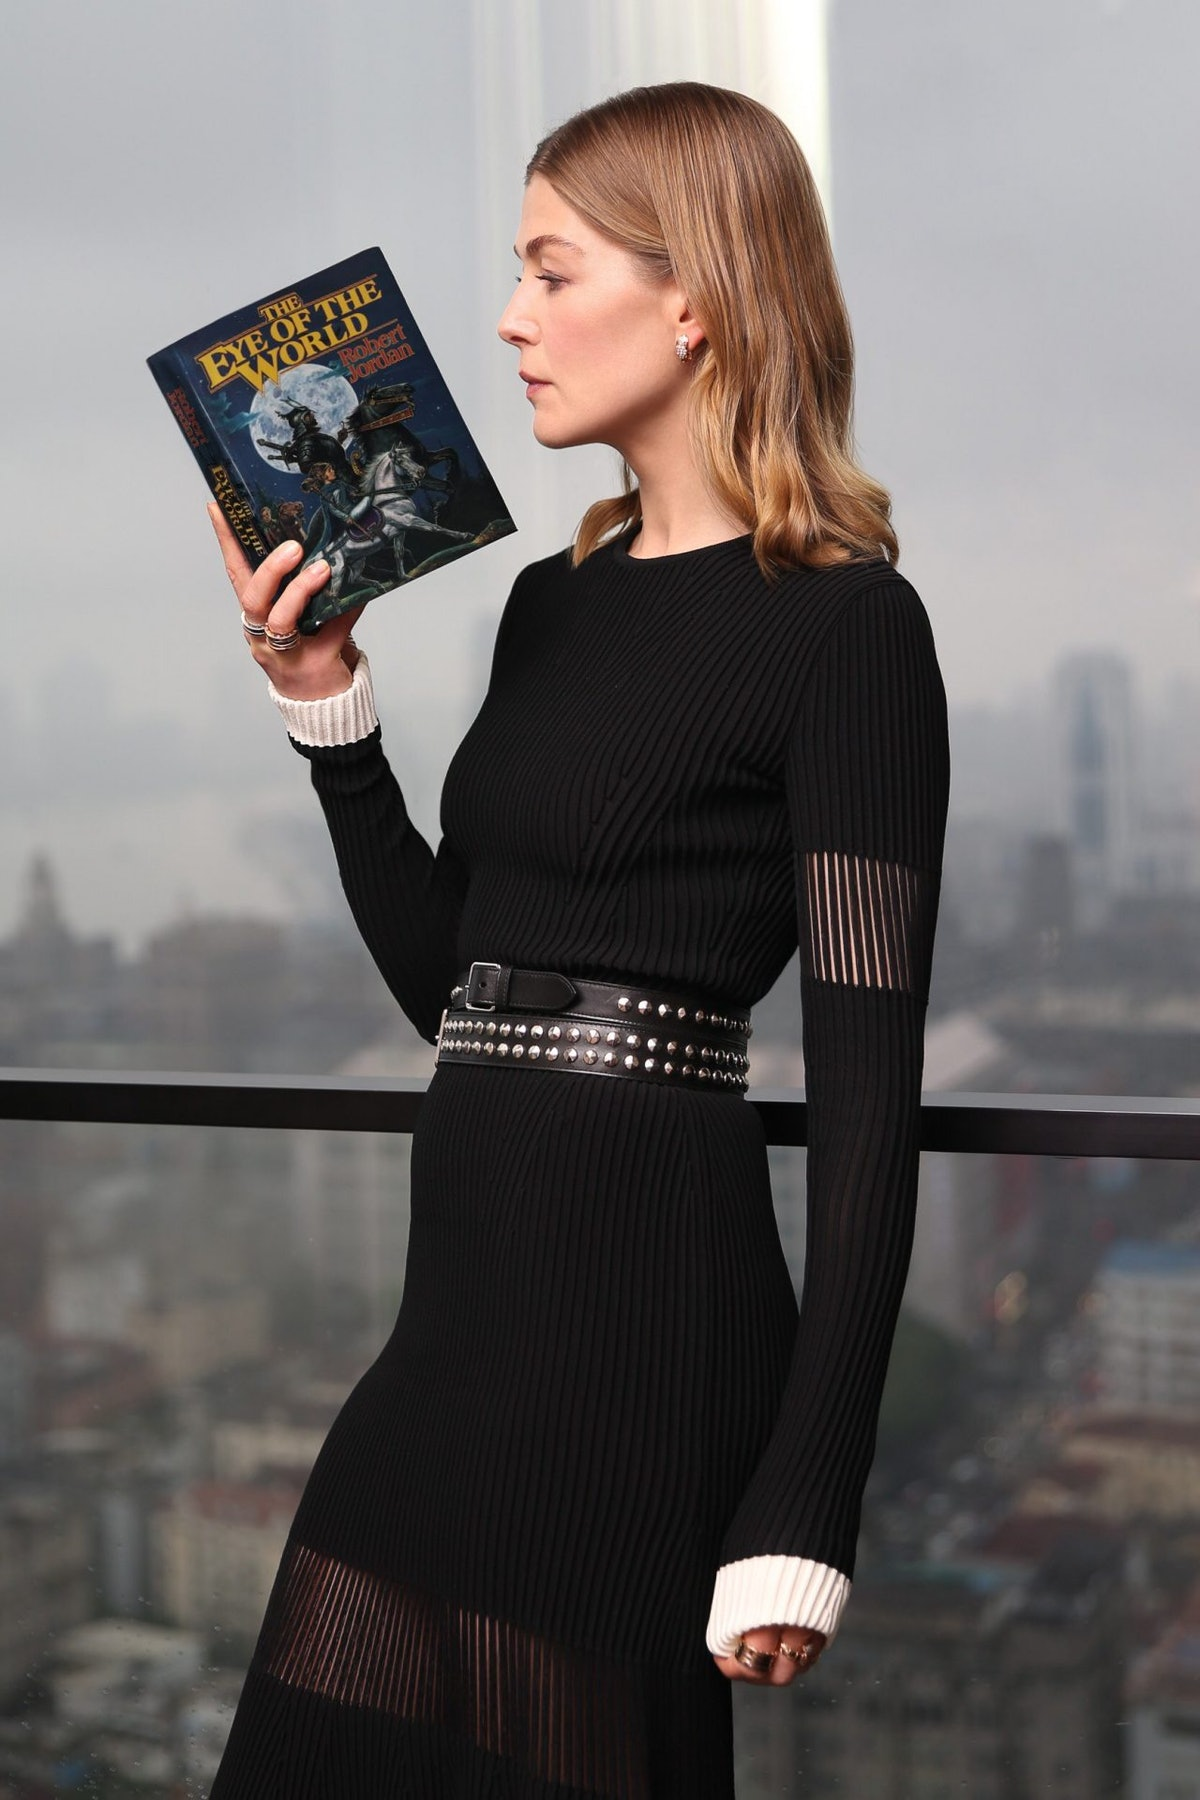 Rosamund Pike, who plays Moiraine Sedai, reading 'The Wheel of Time's first novel, 'The Eye of the W...